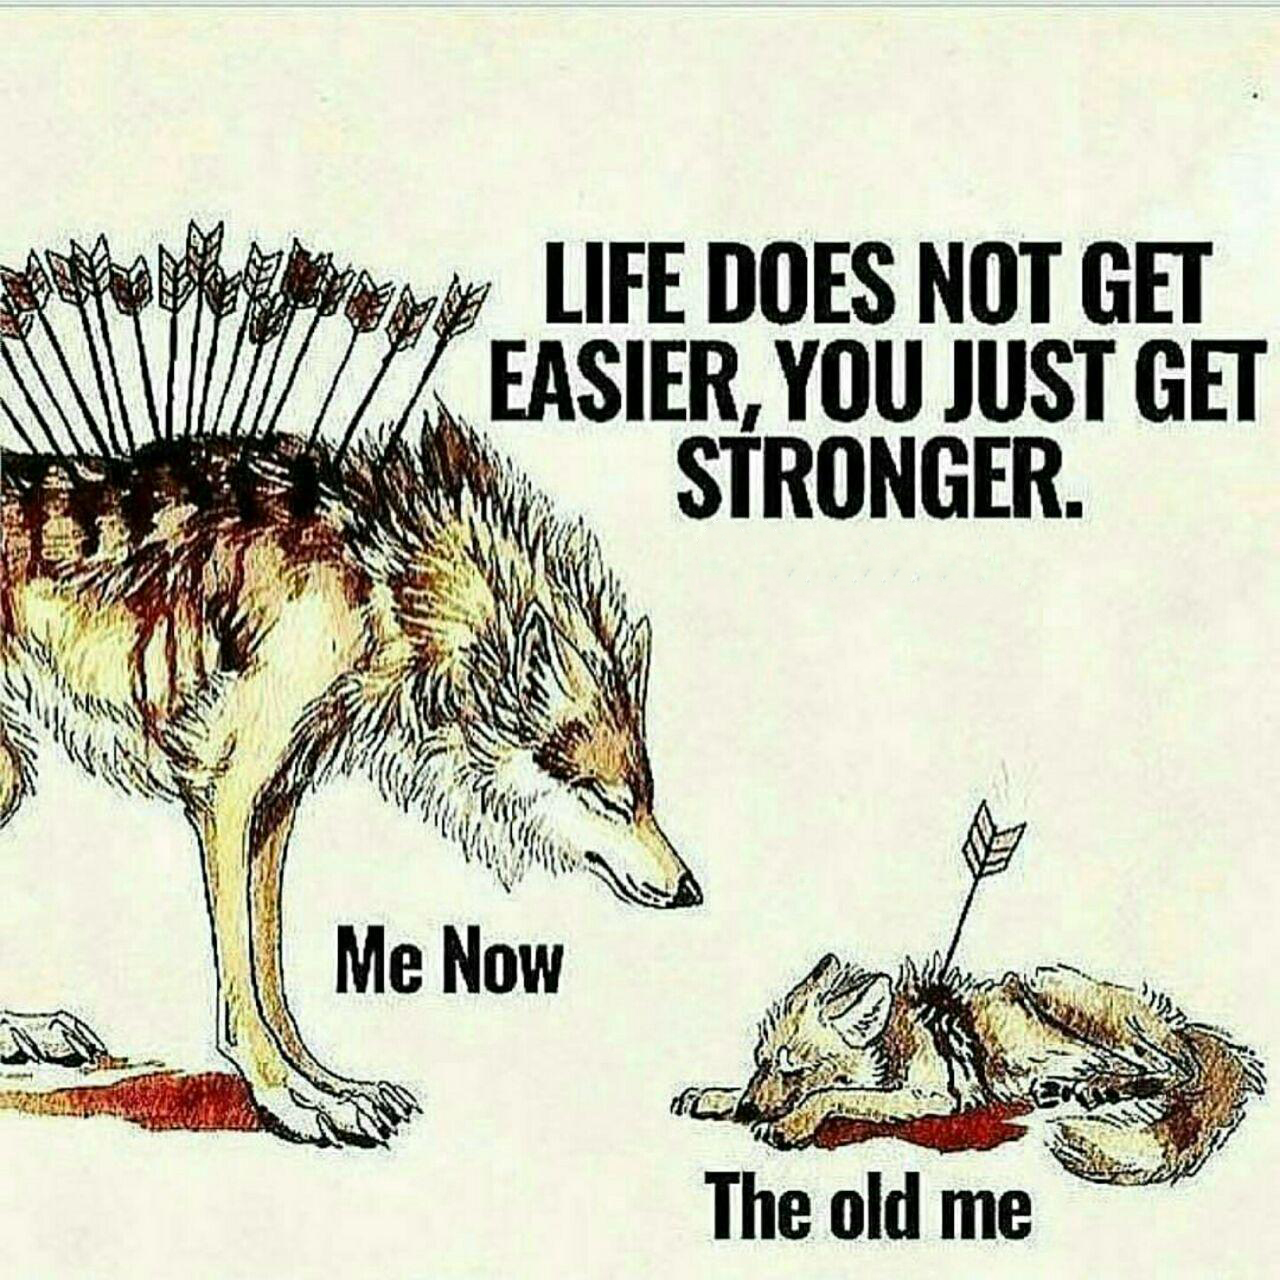 [image] TRY MORE, GET STRONGER